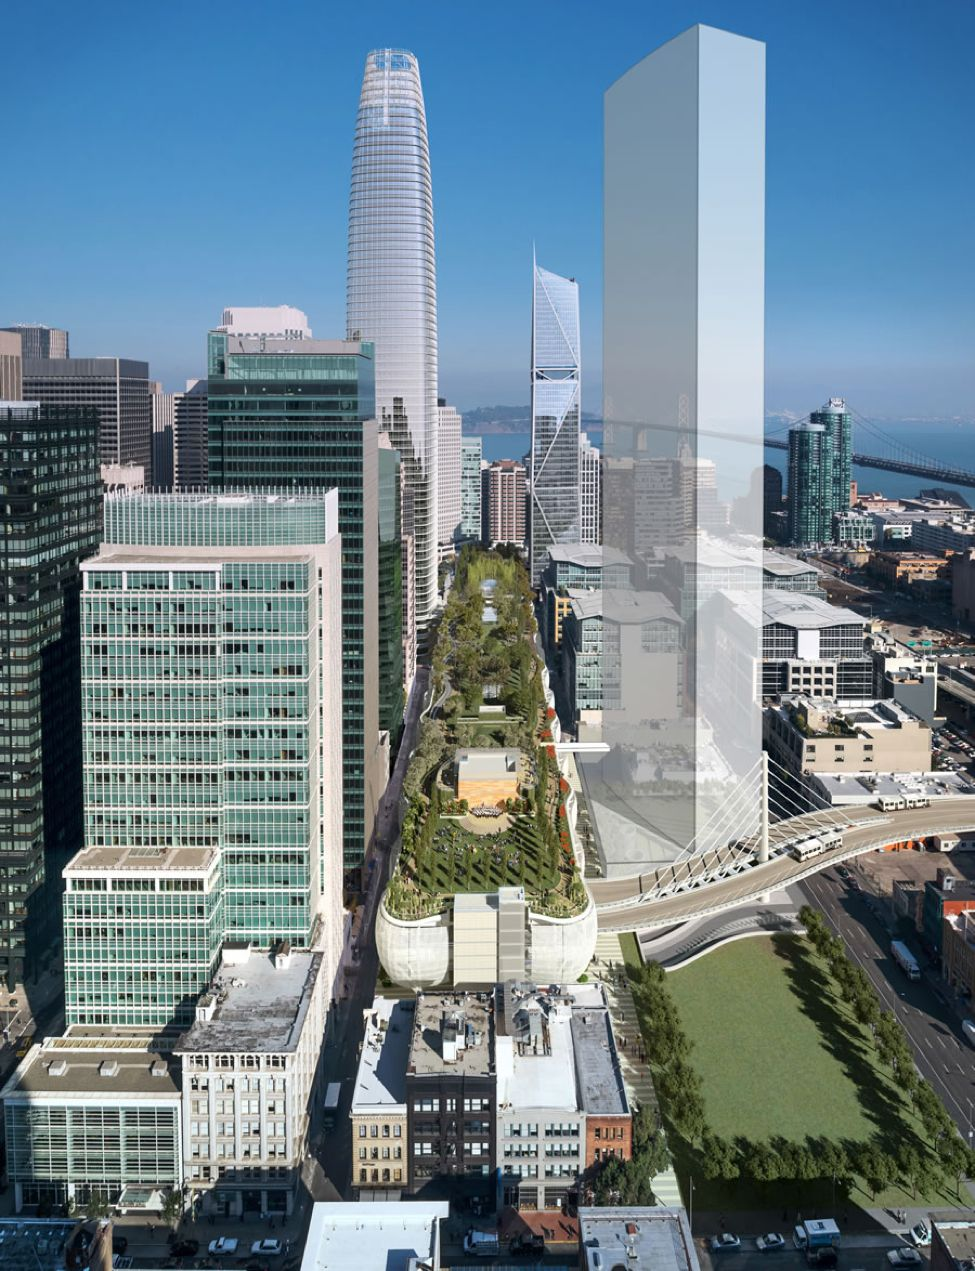 Nicht nur einmal war das Eröffnungsdatum für das Salesforce Transit Centre in San Francisco verschoben worden. Nun wurde als Eröffnungstermin der 12. August 2018 bekannt. Foto: Rendering by Pelli Clark Pelli, courtesy of the TJPA